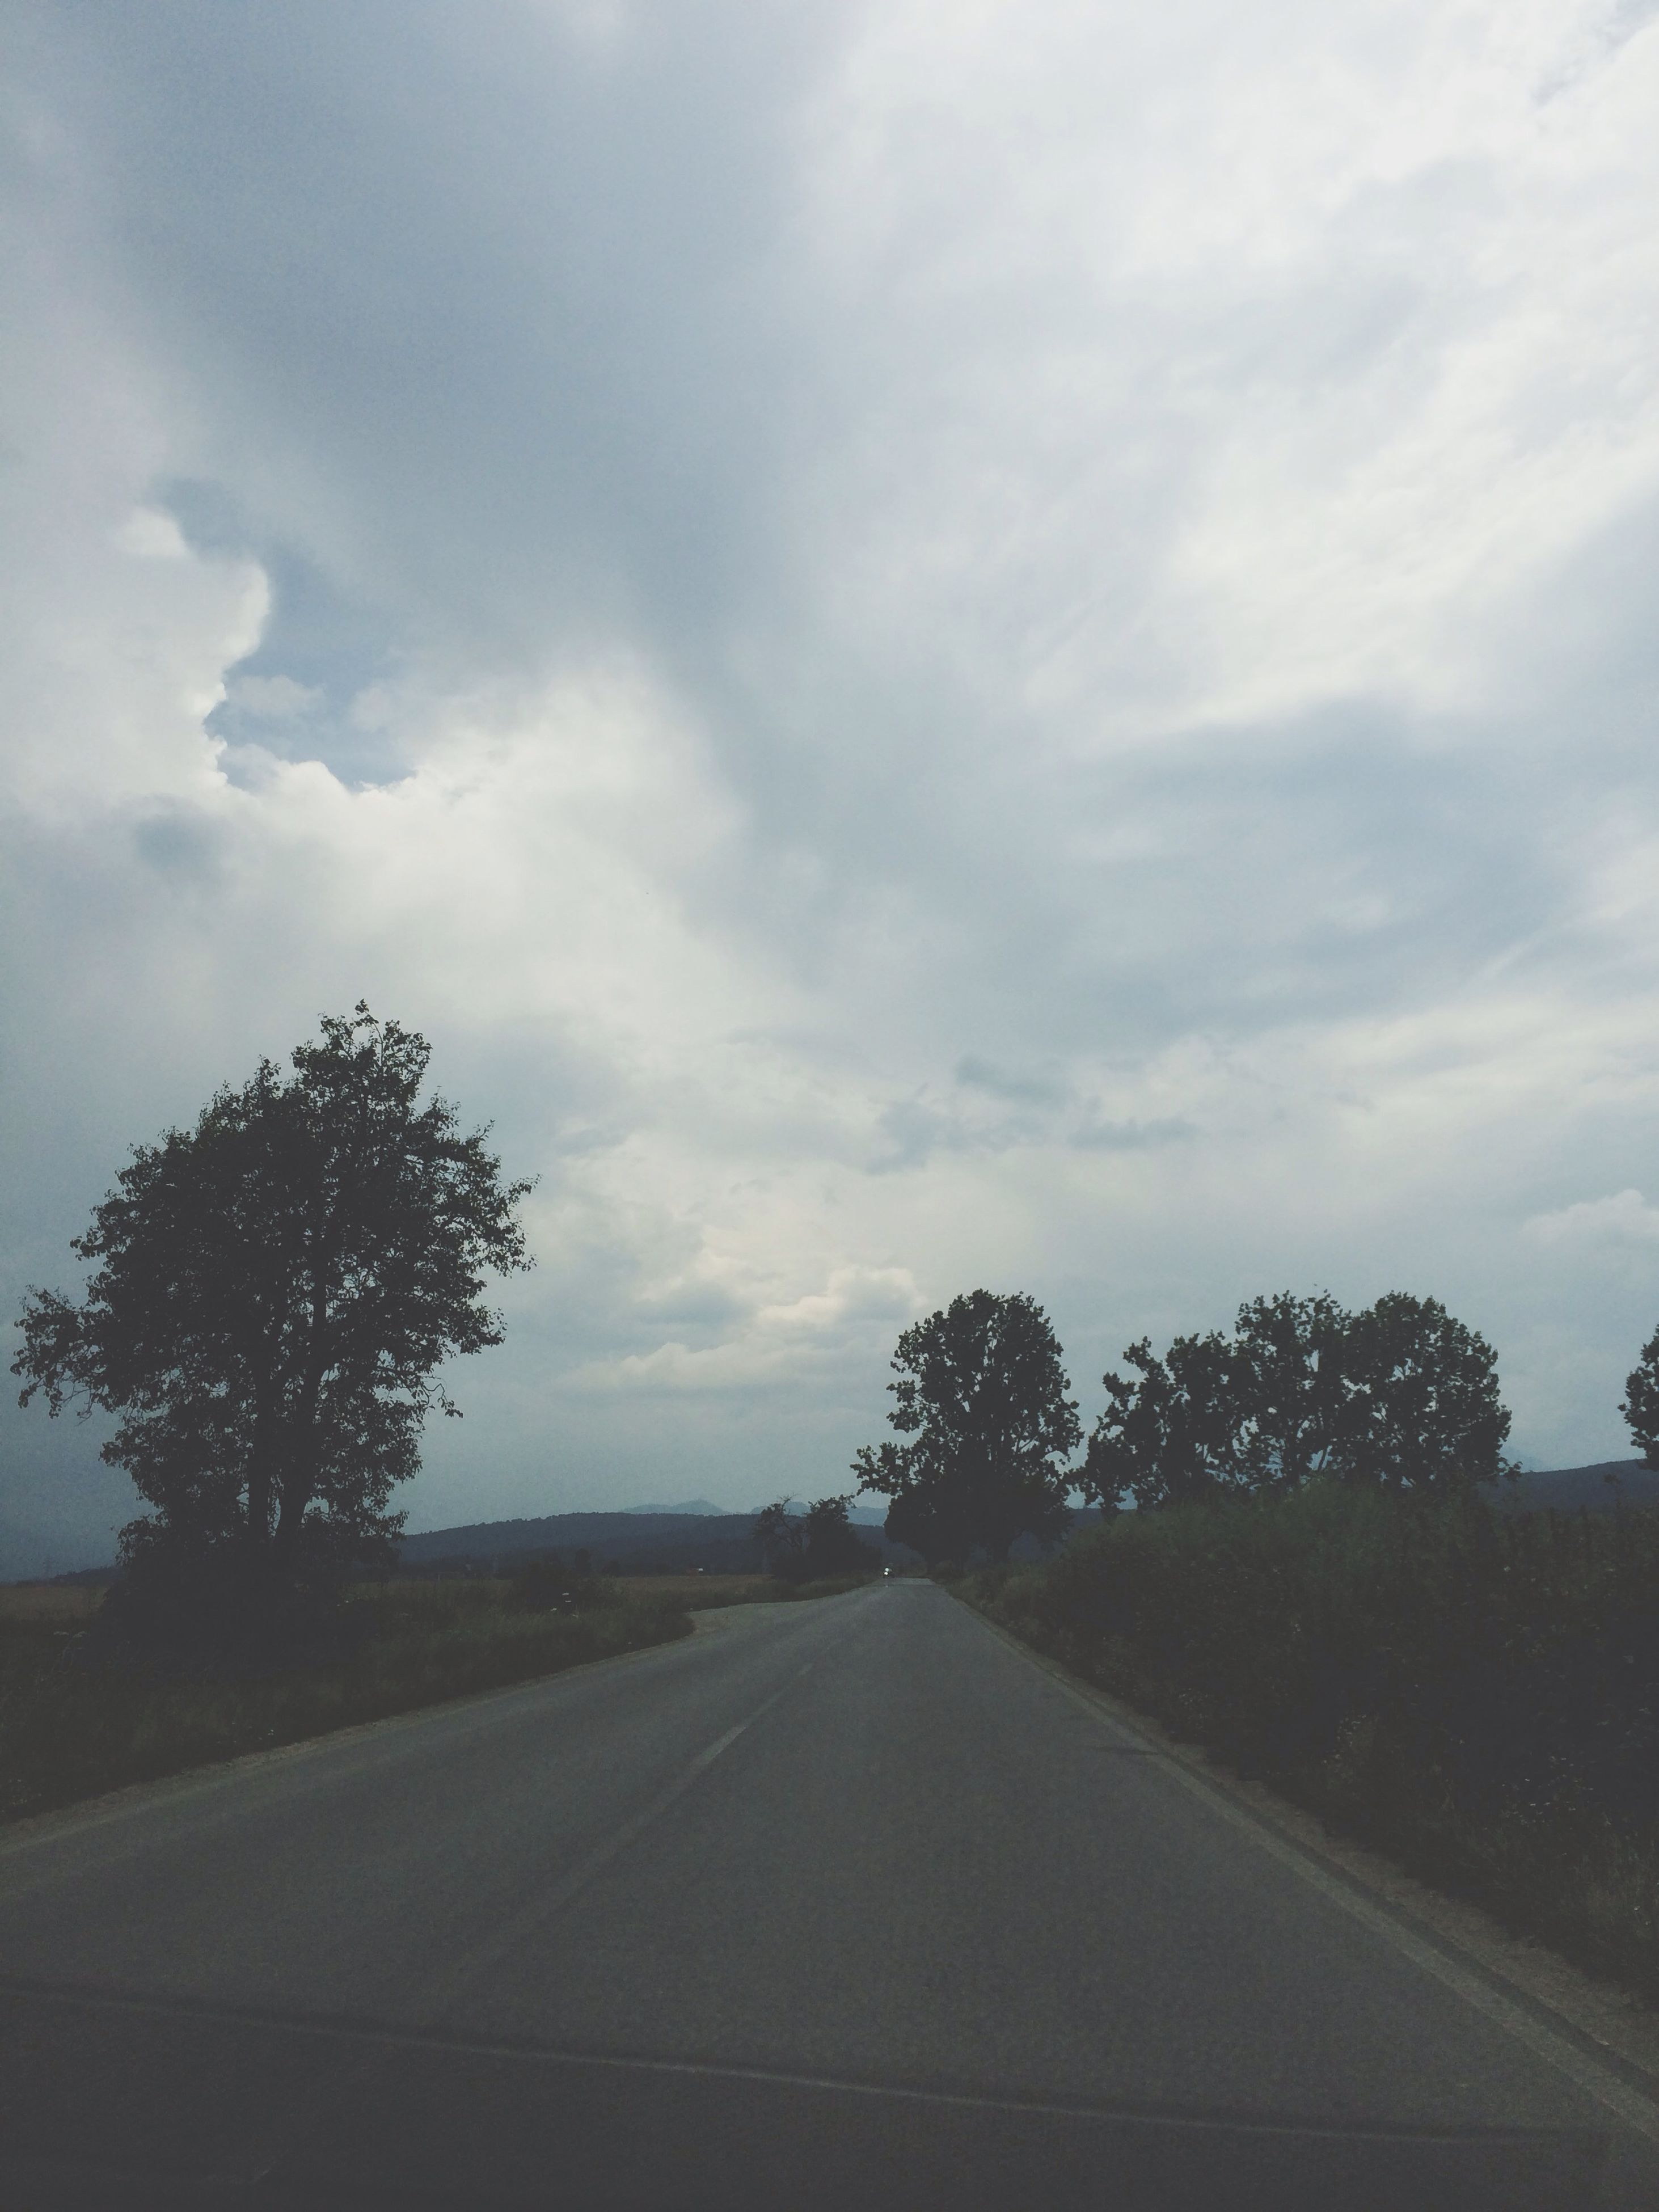 sky, the way forward, road, transportation, tree, cloud - sky, diminishing perspective, tranquility, cloudy, vanishing point, tranquil scene, road marking, cloud, landscape, country road, nature, empty road, empty, scenics, beauty in nature